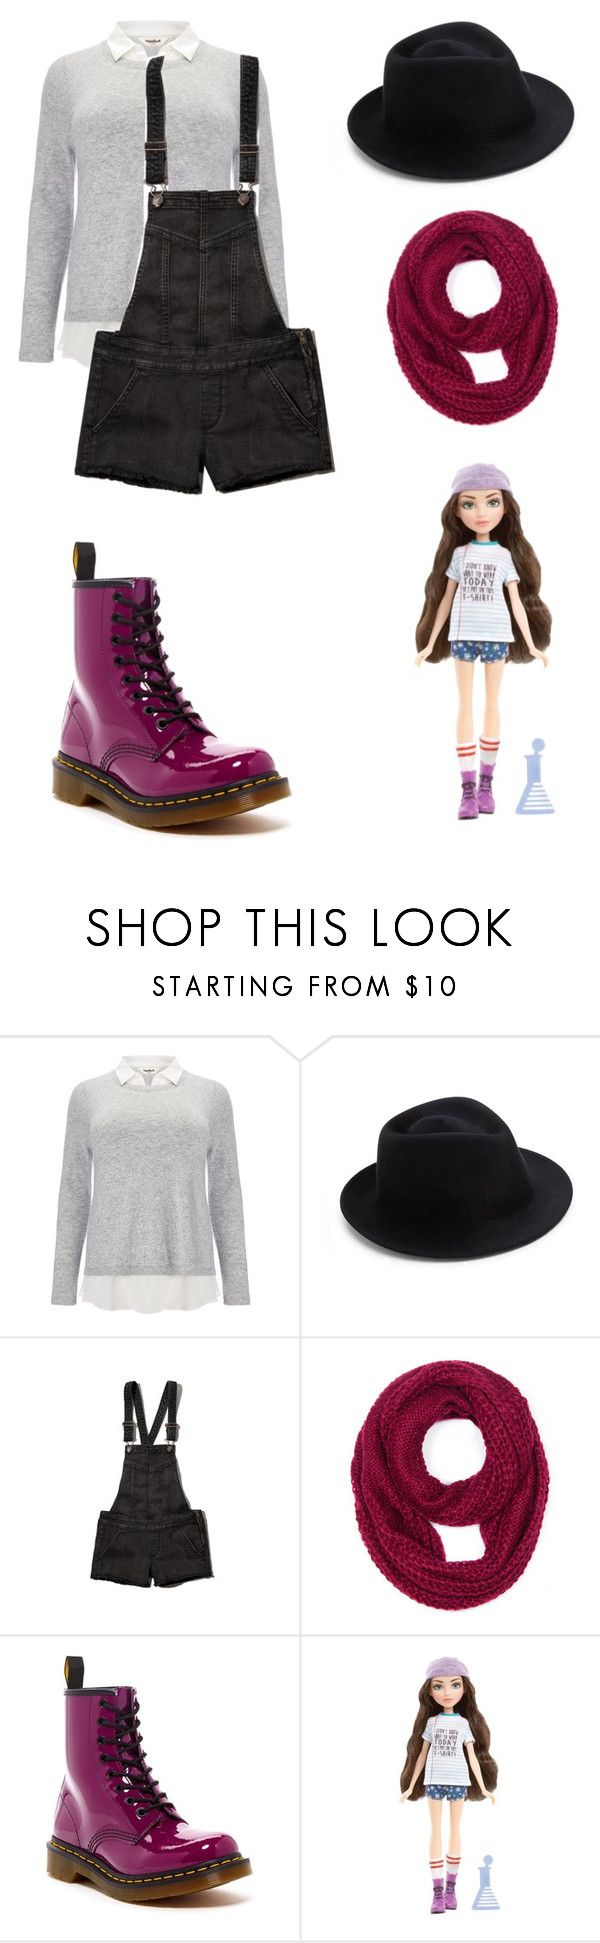 """Project MC2 McKeyla Themed Outfit"" by artsydoglovergabs ❤ liked on Polyvore featuring Studio 8, Eugenia Kim, Abercrombie & Fitch, Jasmine, Dr. Martens and MC2"